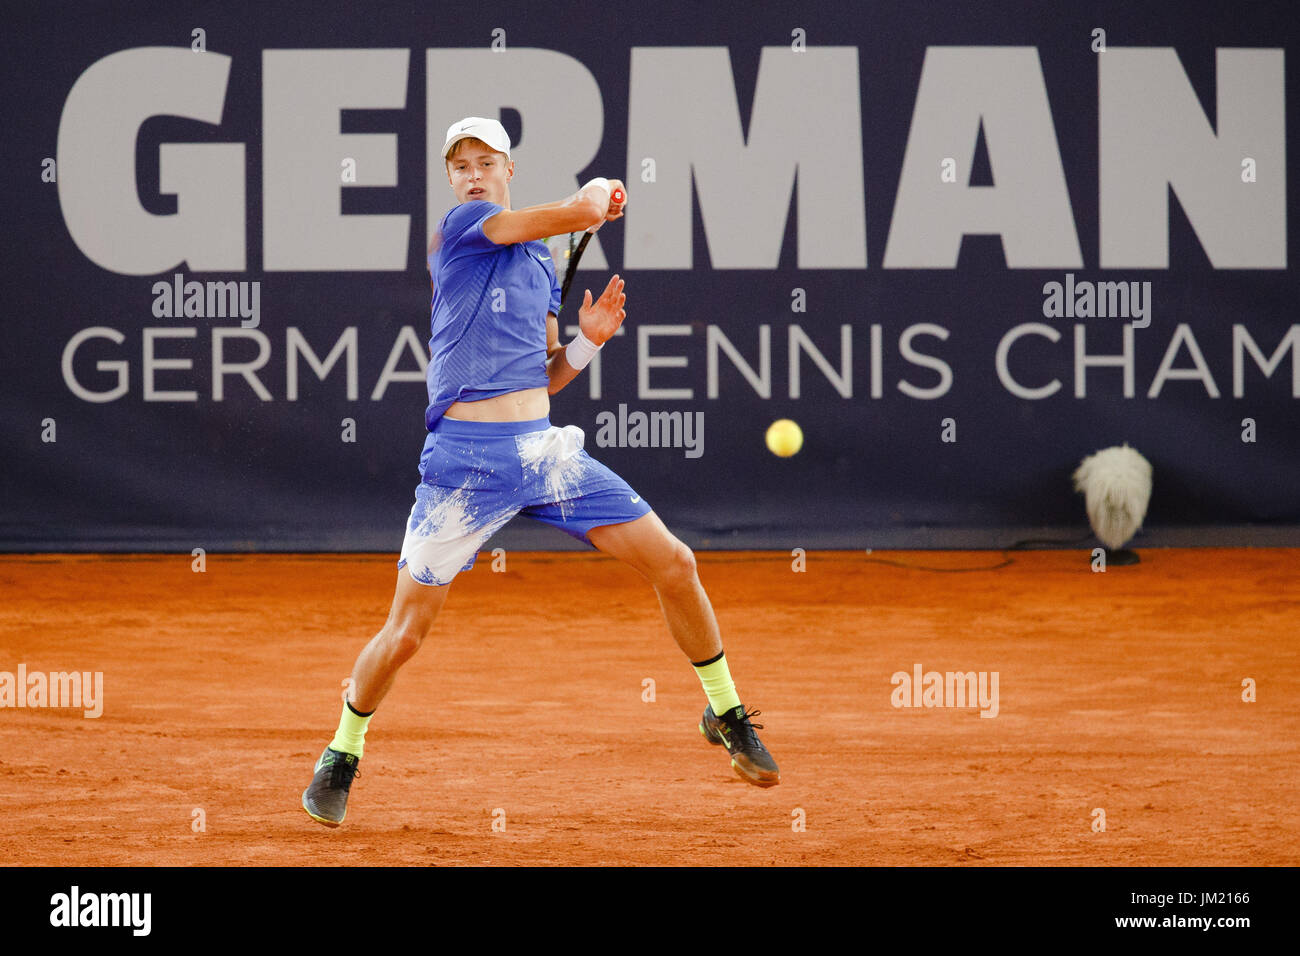 Hamburg, Germany, 25th July 2017: 16 years old tennis player Rudolf Molleker during the German Open 2017 at the Hamburg Rothenbaum. Credit: Frank Molter/Alamy Live News - Stock Image